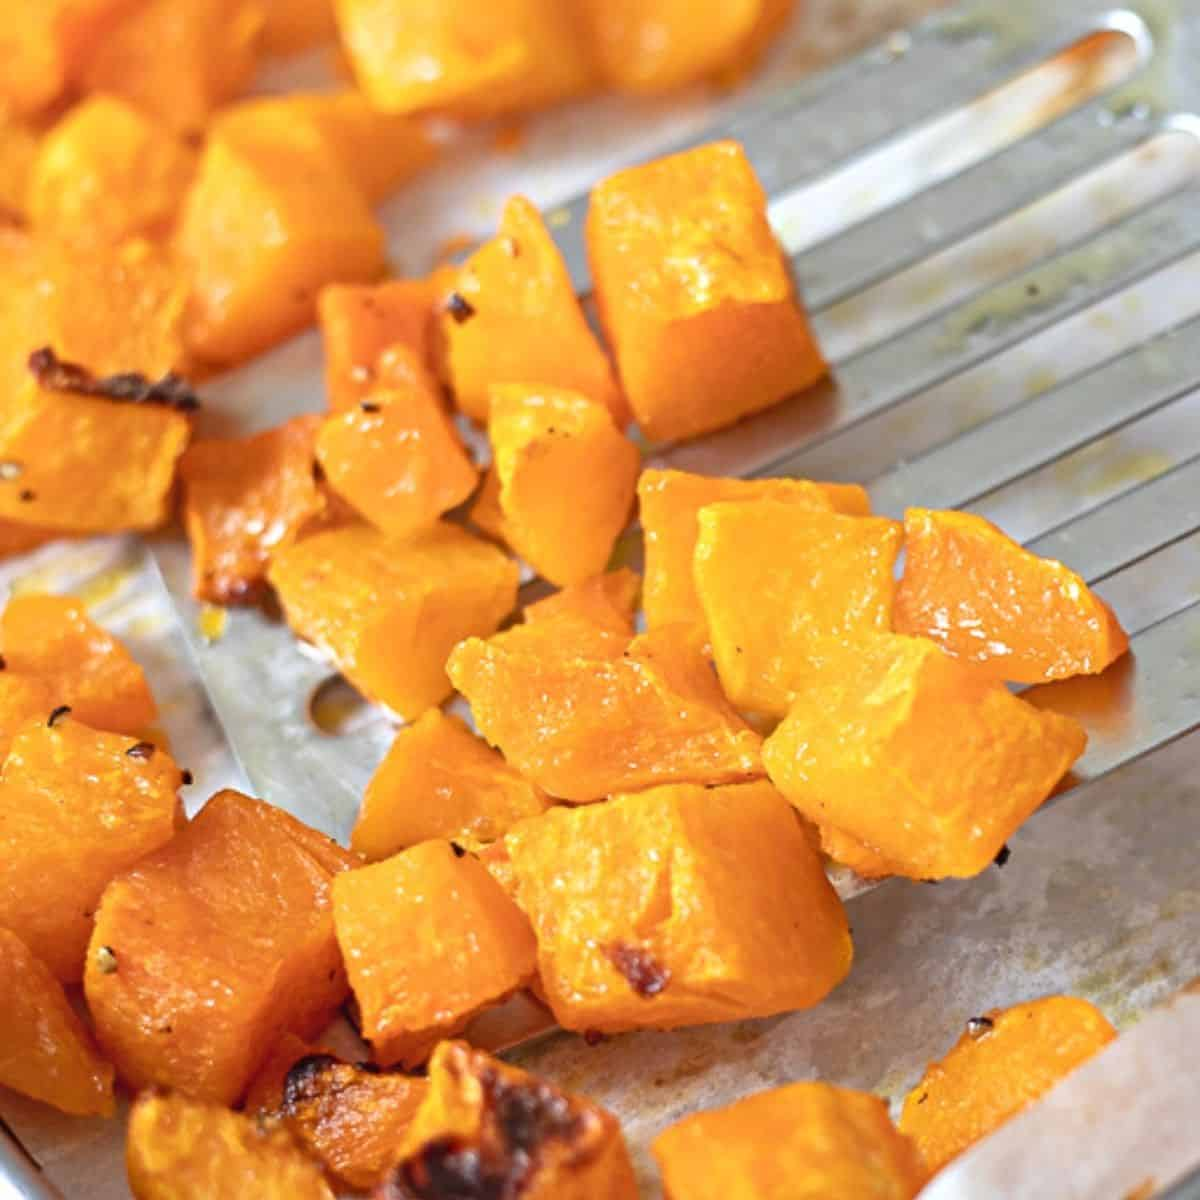 Spatula scooping up roasted squash.